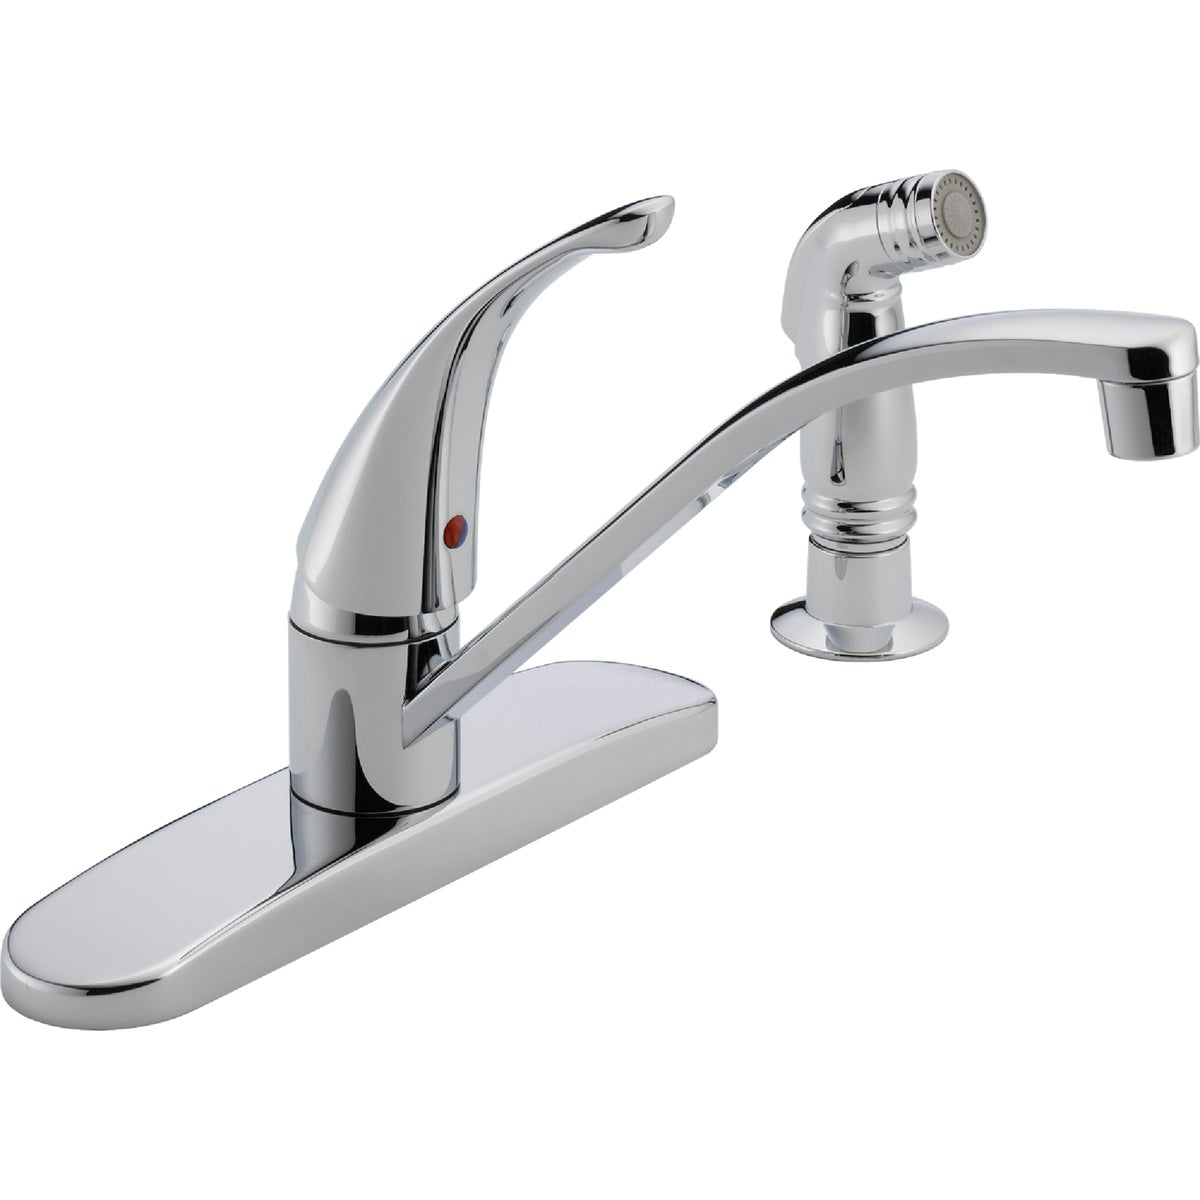 1H CH KIT FAUCET W/SPRY